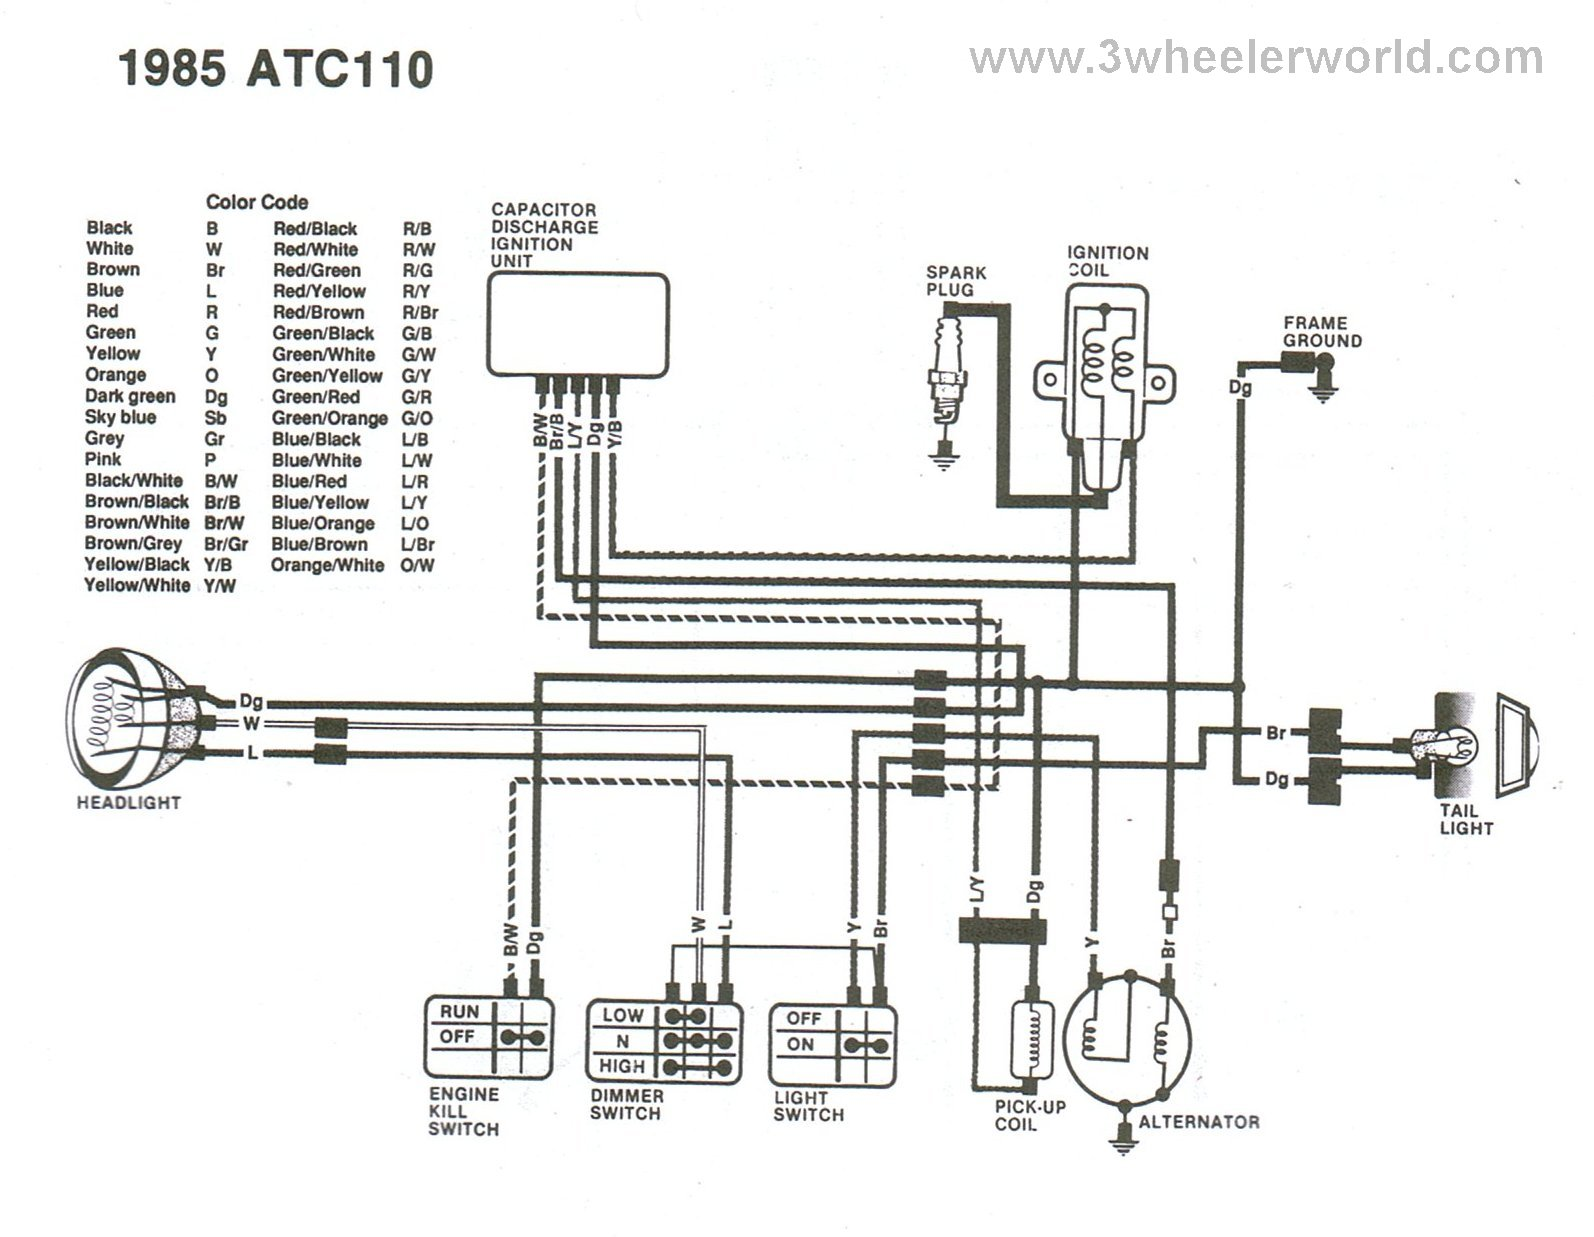 110cc Wiring Diagram Schematics Mini Chopper For Electric Start With 2008 Taotao Ata 110 Harness Starting Know About Sunl